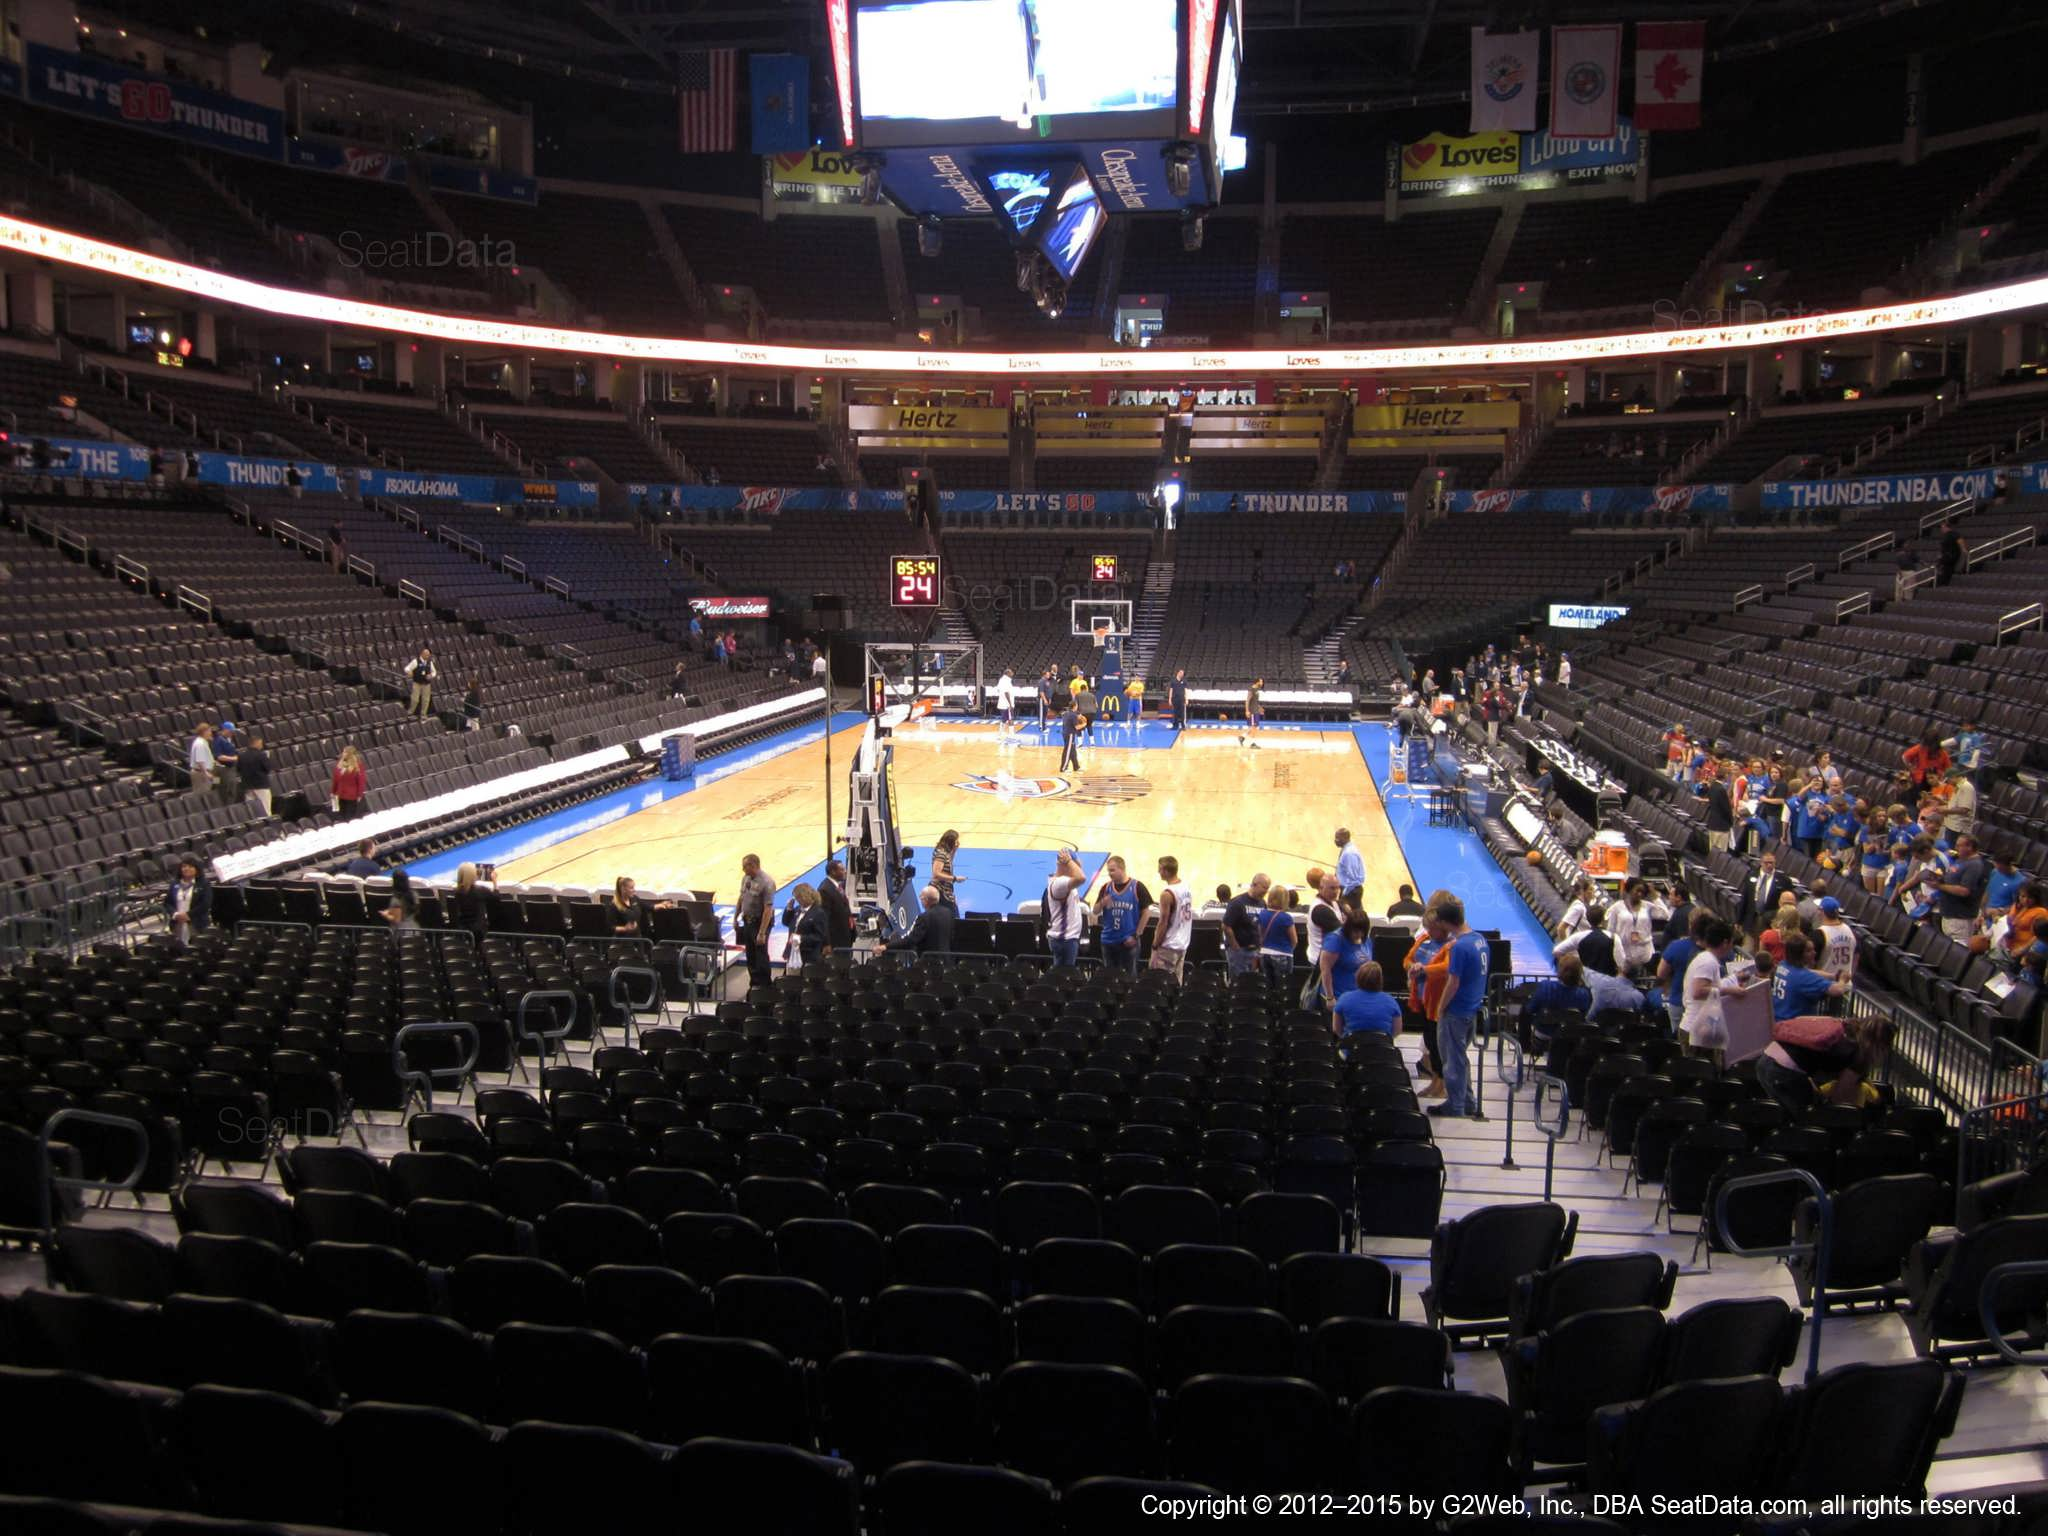 Seat view from section 120 at Chesapeake Energy Arena, home of the Oklahoma City Thunder